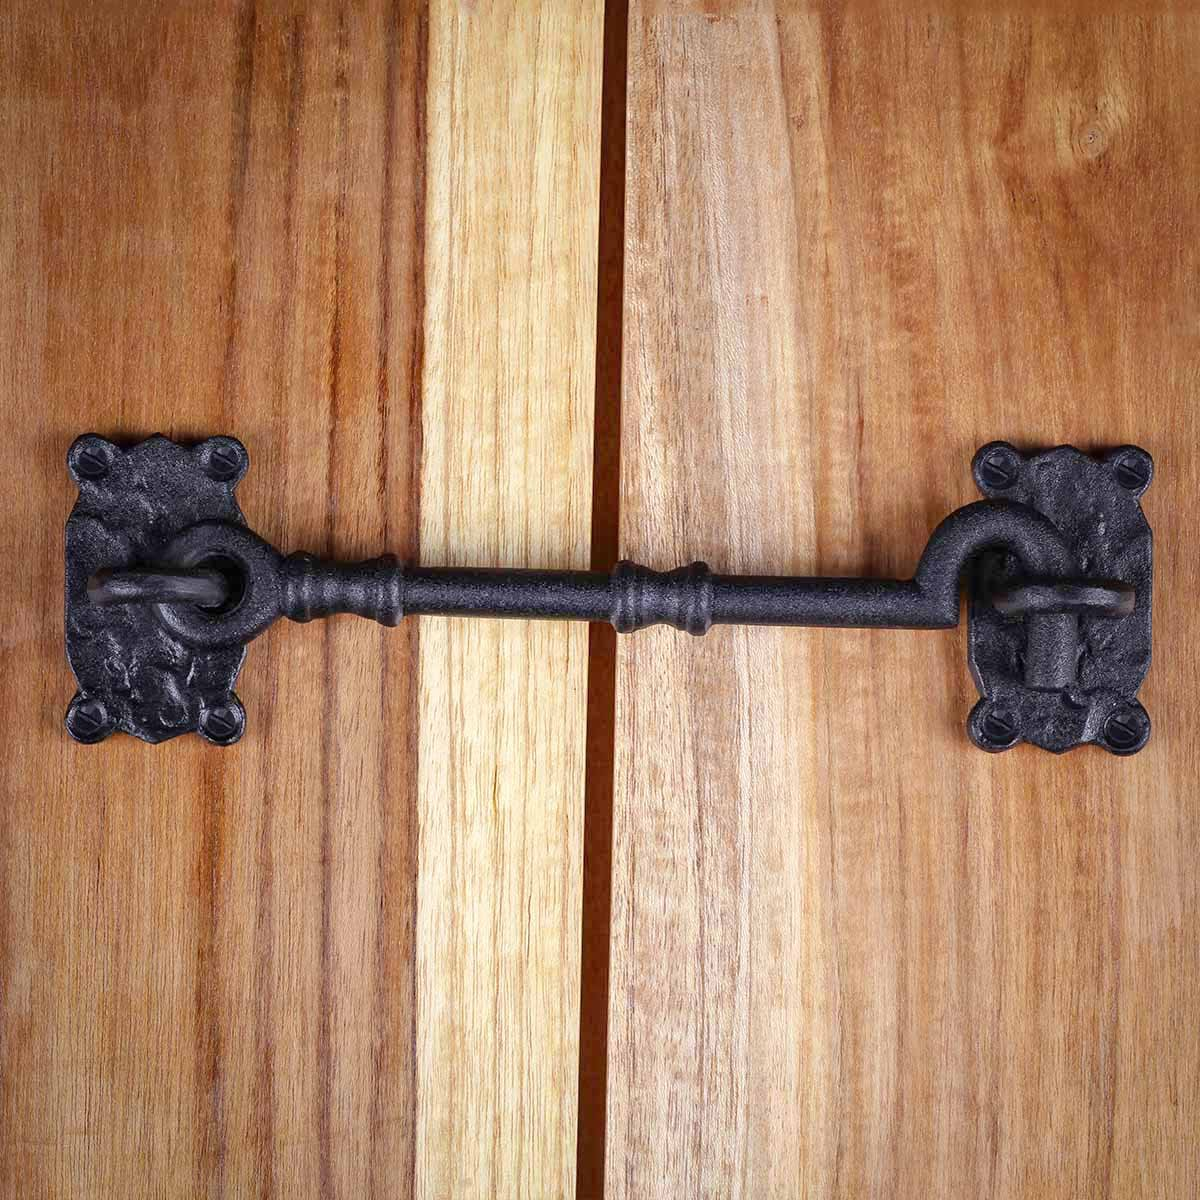 Cabin Hook Privacy Latch Black Wrought Iron 7.25 Set of 10 Cabin Hooks Privacy Hook Latch Cabin eye Hooks